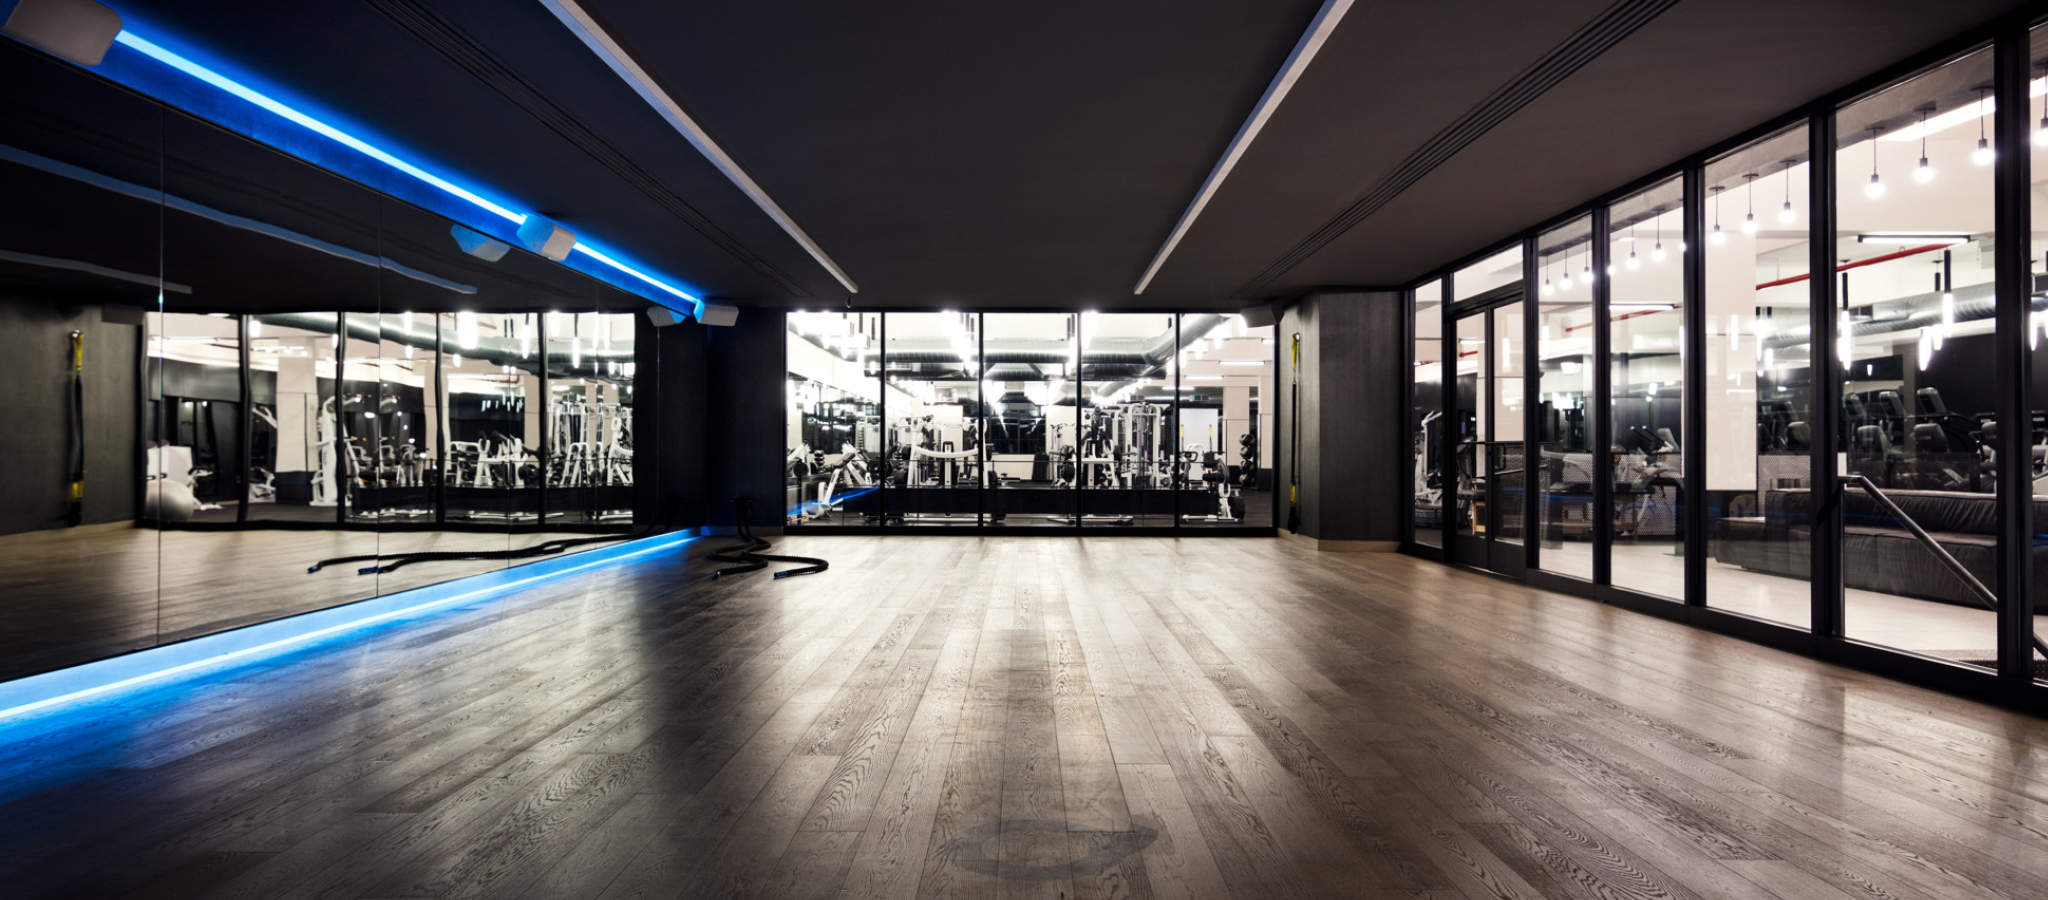 gyms in williamsburg, brooklyn: fitness club with pilates & yoga